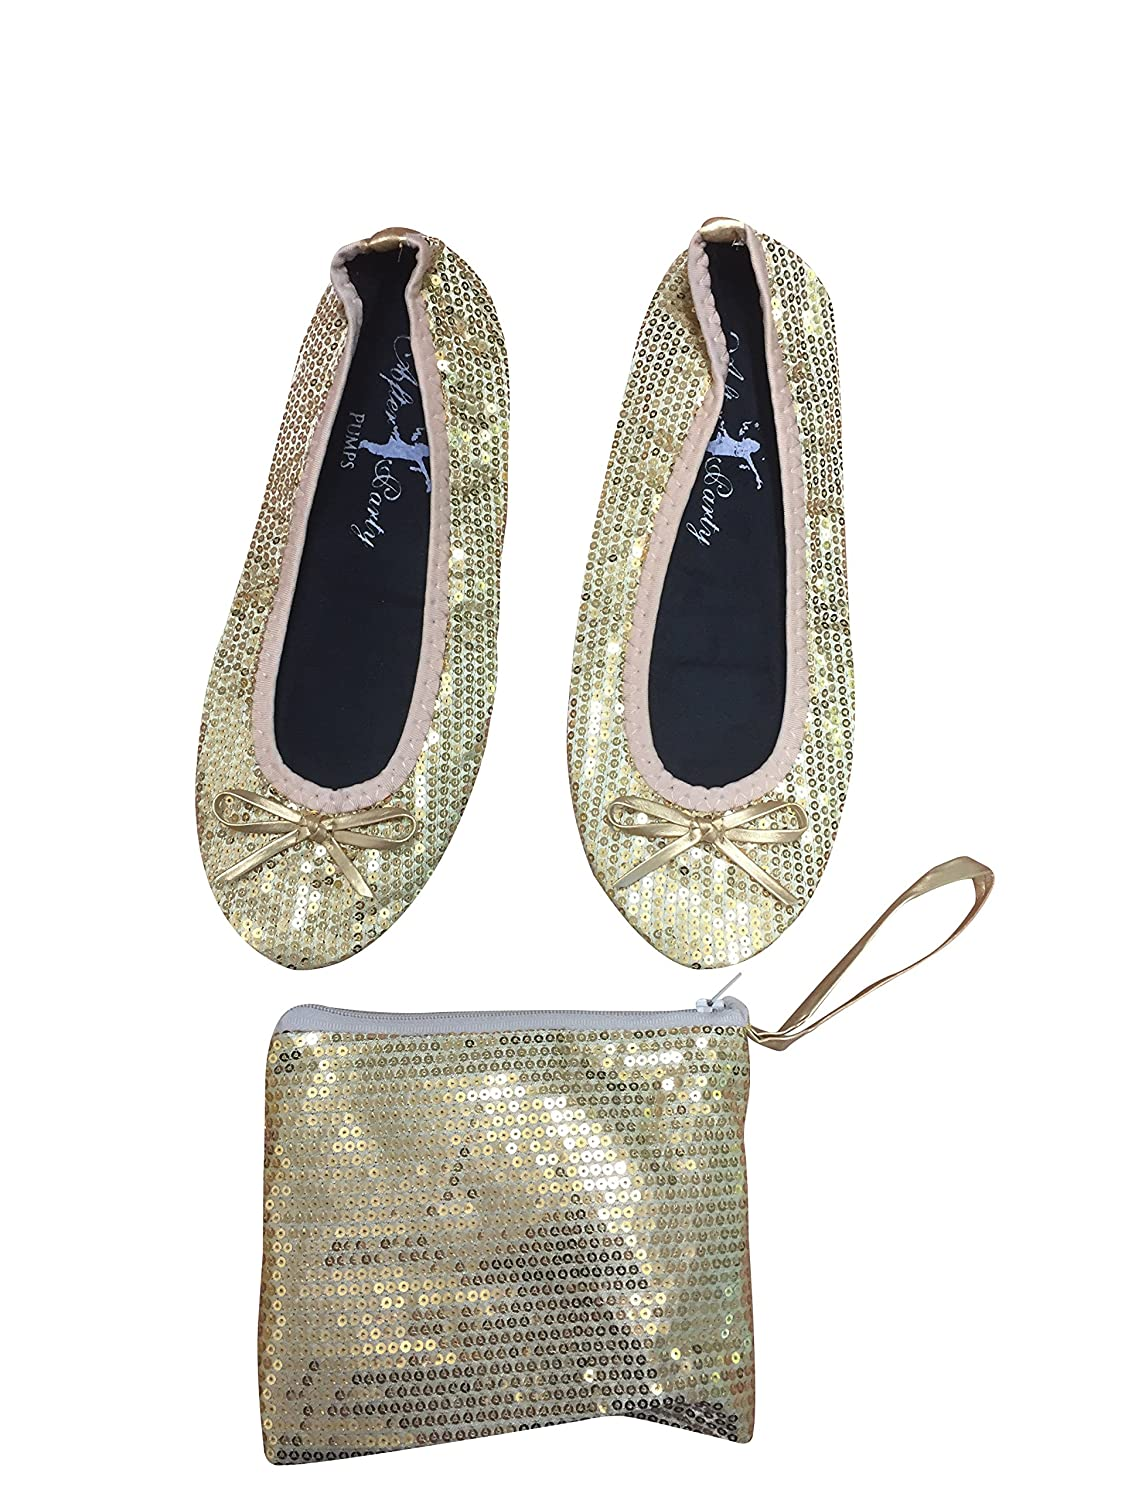 3b2cd99a2c0 After Party Pumps Ladies Roll up Shoes Fold up Pumps with Carrier Pouch 3  Ranges Original Animal Sequin  Amazon.co.uk  Shoes   Bags